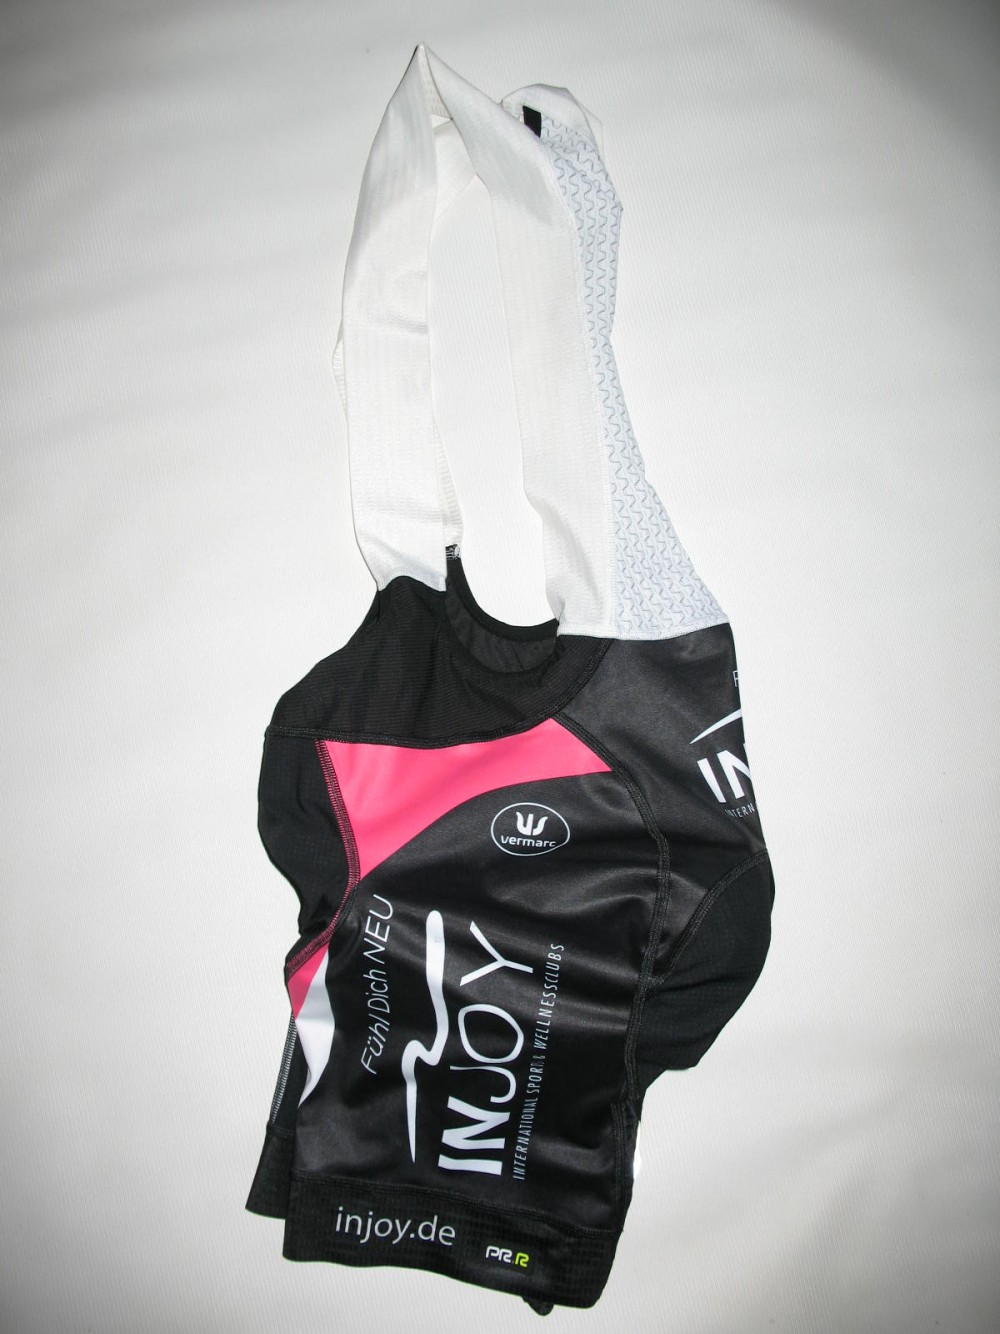 Велошорты VERMARC injoy prr cycling bib short (размер S) - 2